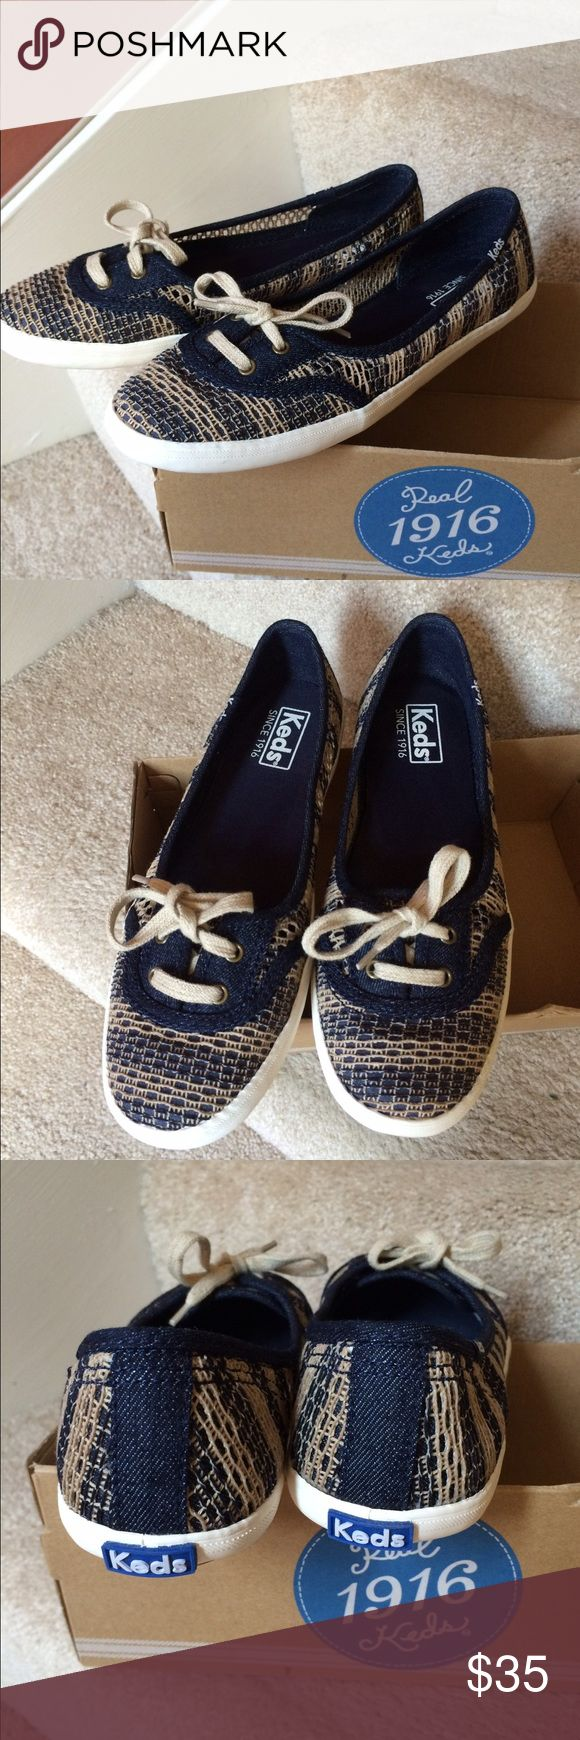 New Keds Teacup Crochet Women Slip On Shoes Size 7 Brand new with box Box has no lid Women size 7M 🙋🏻taking reasonable offer  Fast shipping Keds Shoes Flats & Loafers